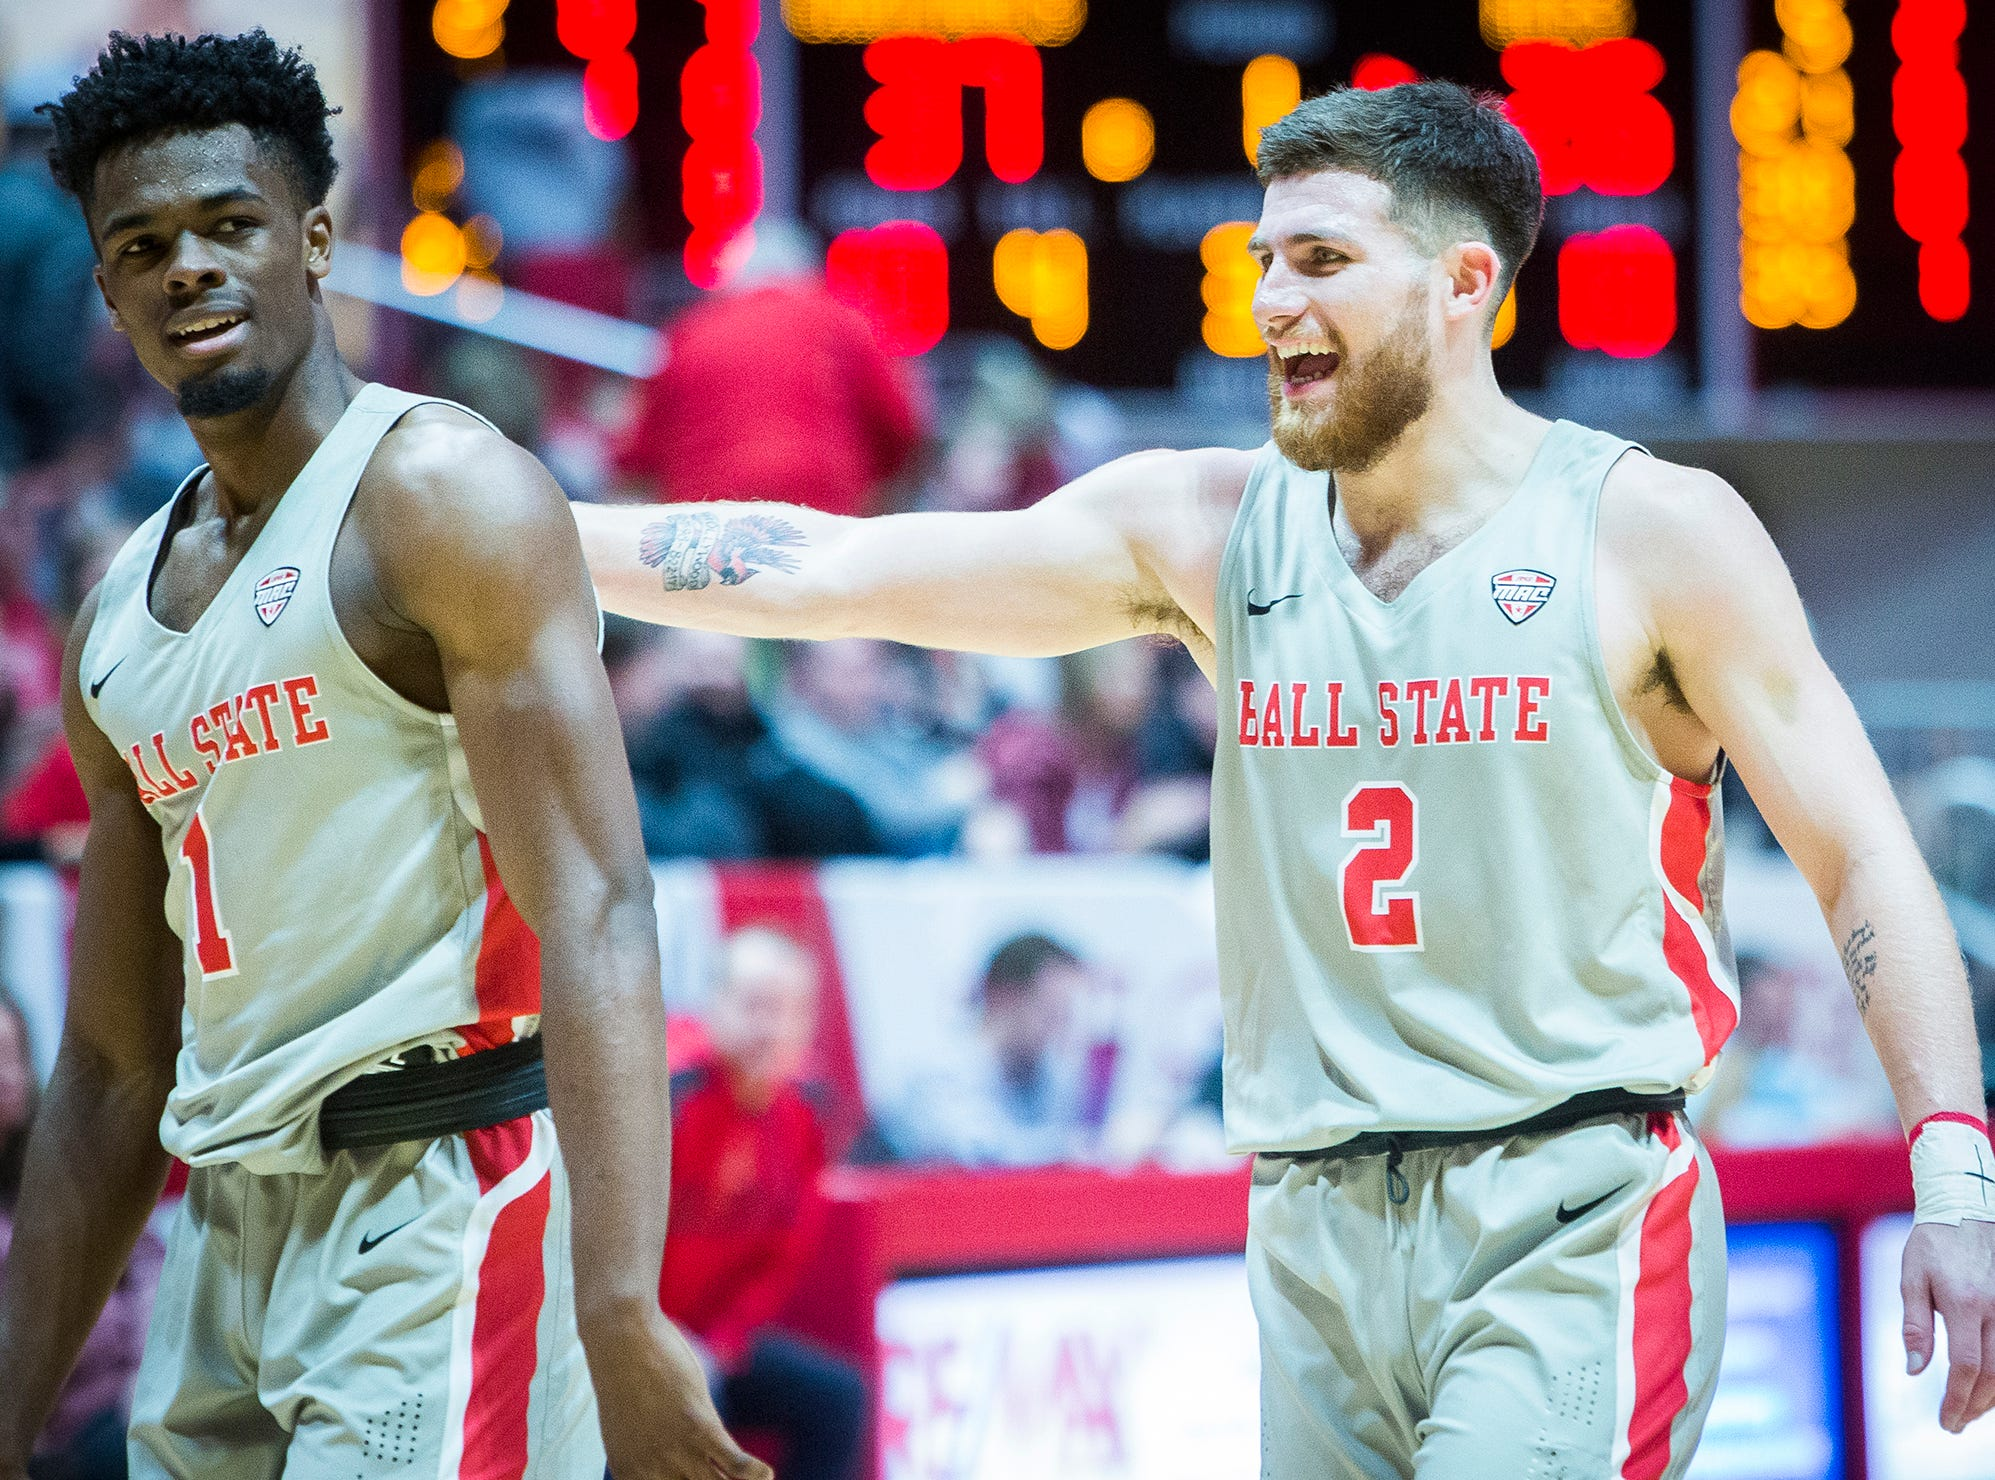 Ball State's Tayler Persons celebrates with K.J. Walton at the end of the first half during their game against Evansville at Worthen Arena Saturday, Nov. 24, 2018.